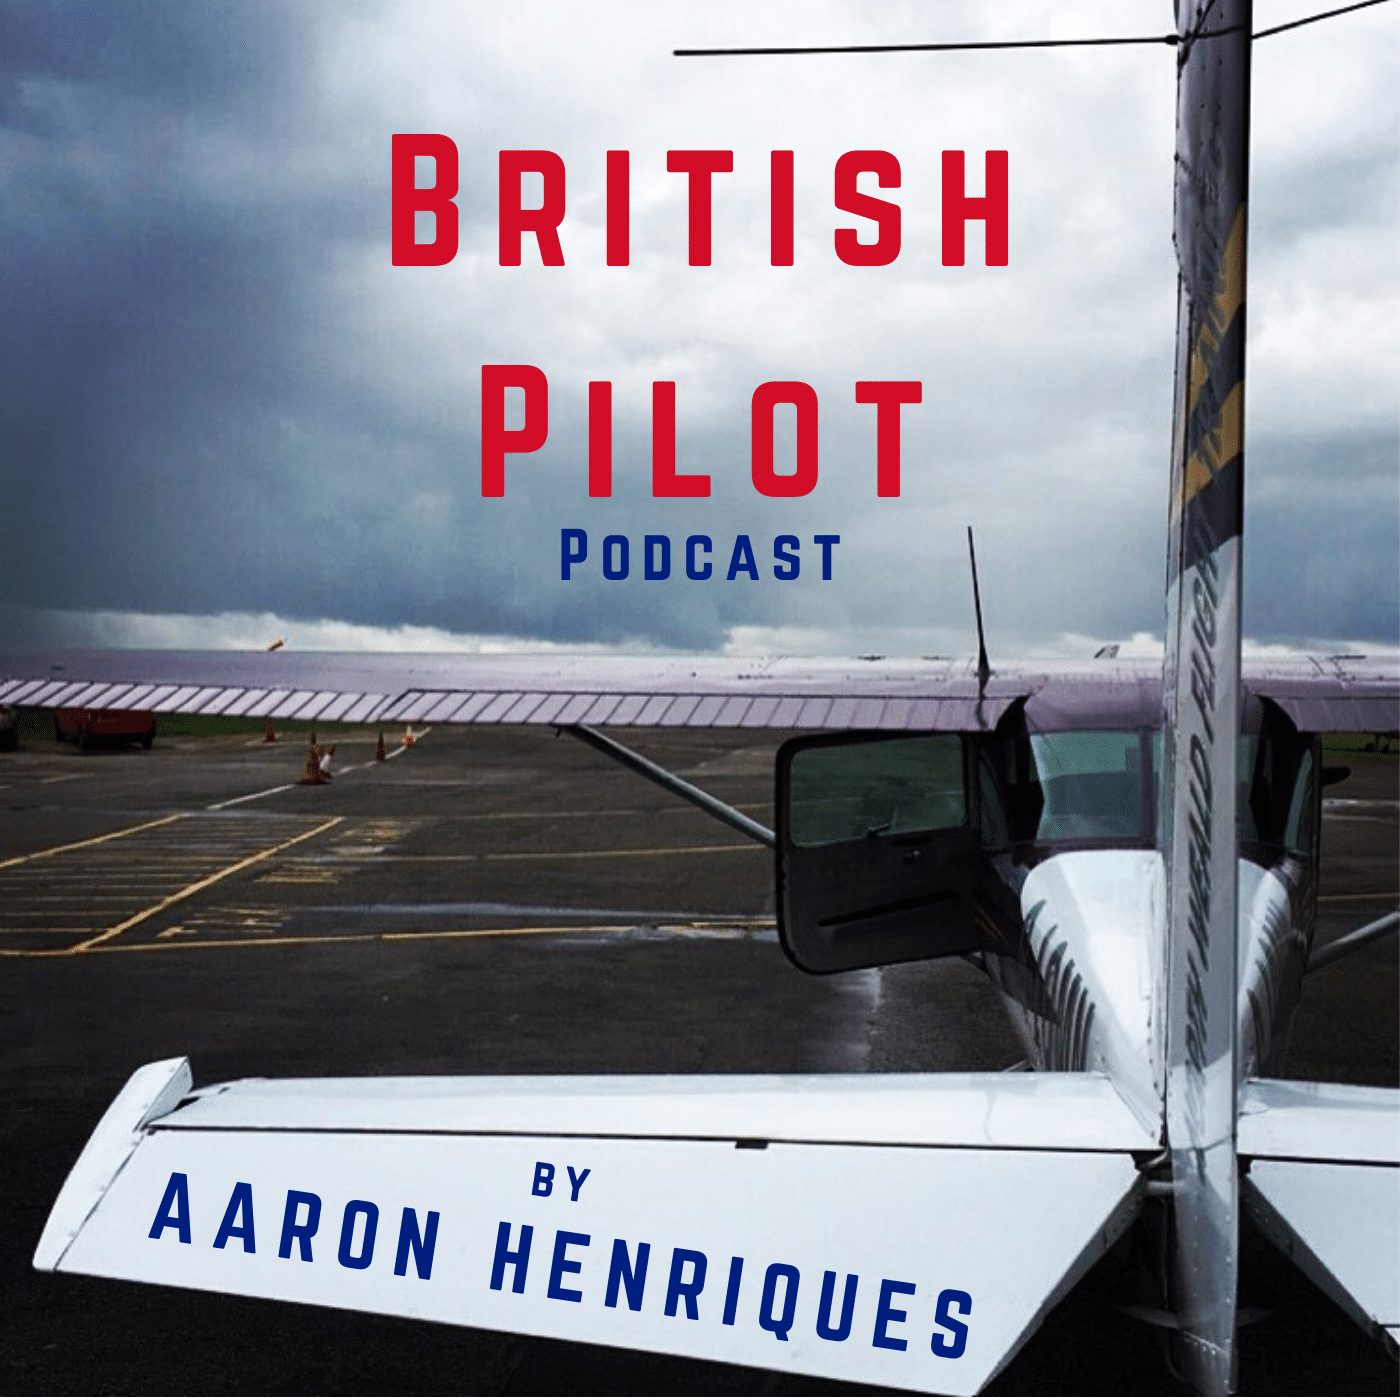 The British Pilot Podcast is hosted by Aaron Henriques a British entrepreneur and former police officer in London. Watch while Aaron completes his ATPL pilot theory at Stapleford Flight Centre and completes his commercial pilot flying training to become an airline pilot.